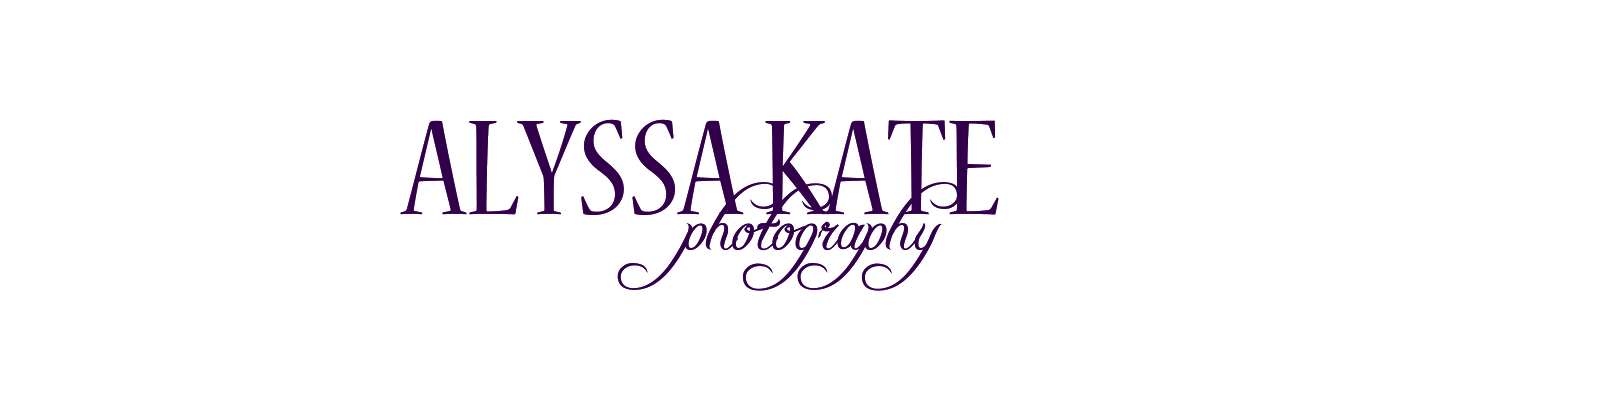 Alyssa Kate Photography